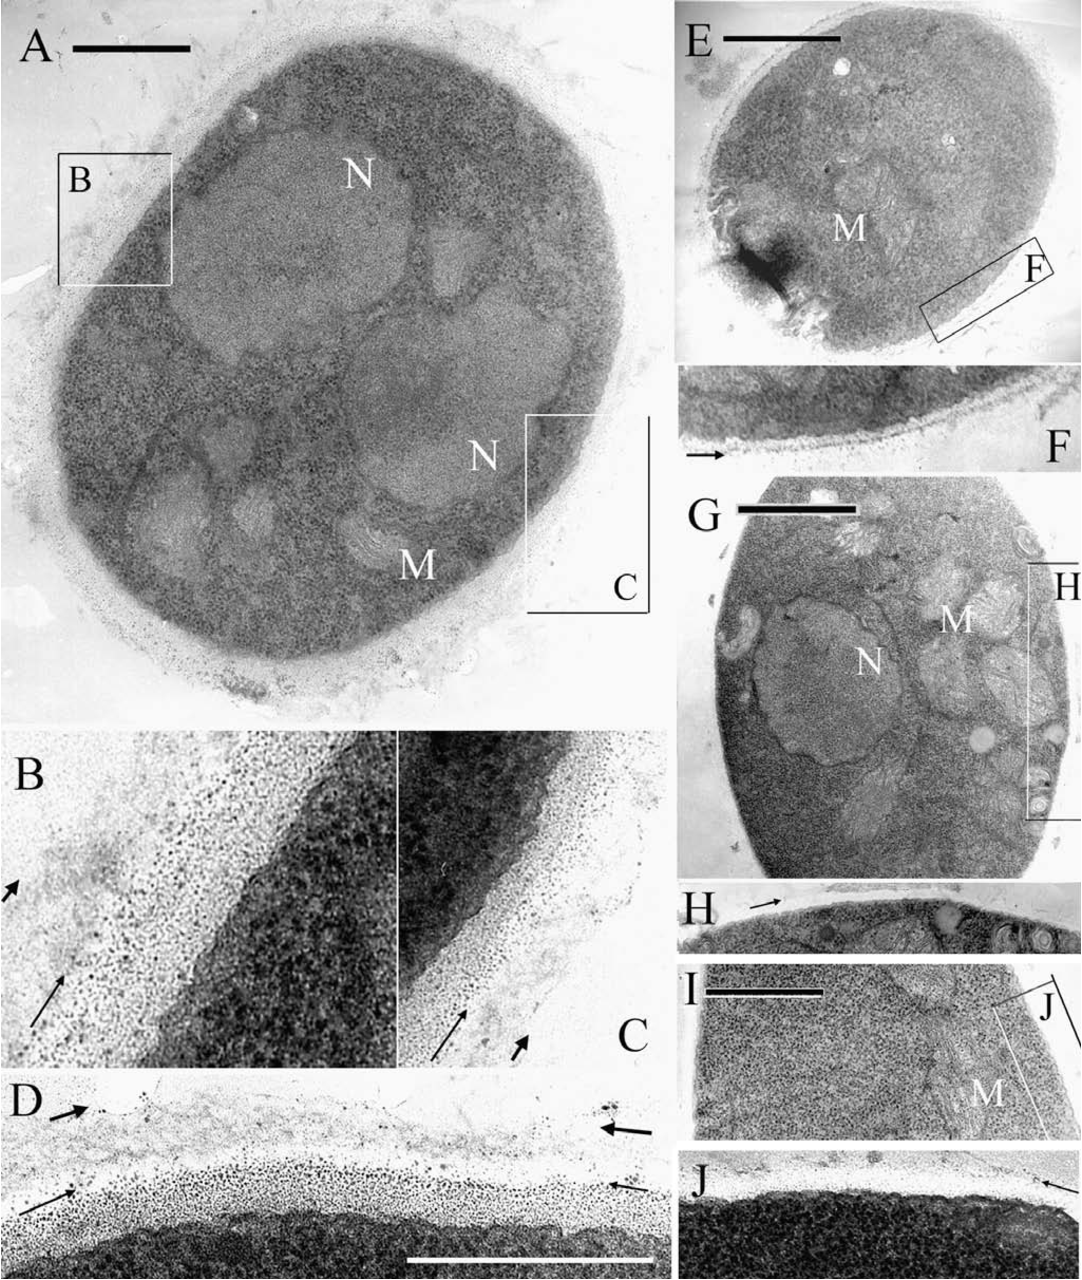 Fig. 6. Transmission electron micrographs of Aspergillus nidulans ugmA∆ strain AAE2 (A– D) and wildtype strain AAE1 (E–F) growing on complete medium (CM); AAE2 hyphae growing on CM containing 1 molar sucrose (G–H) or CM containing 10 µg/mL Calcofluor (I–J). Bars in A, E, G, I = 1 µm. Images in B–C, F, H, J are transverse sections that correspond to the boxed regions in A, E, G, I, respectively, and have been contrast-adjusted and magnified to highlight wall structure. Image D is a transverse section of another AAE2 hypha growing on CM for which a full cross section was not available. Arrows indicate the outer edge of the two prominent wall layers for AAE2 hyphae growing on CM (A–D), and the outer wall of hyphae in other samples (F, H, J). N, nucleus; M, mitochondrion.